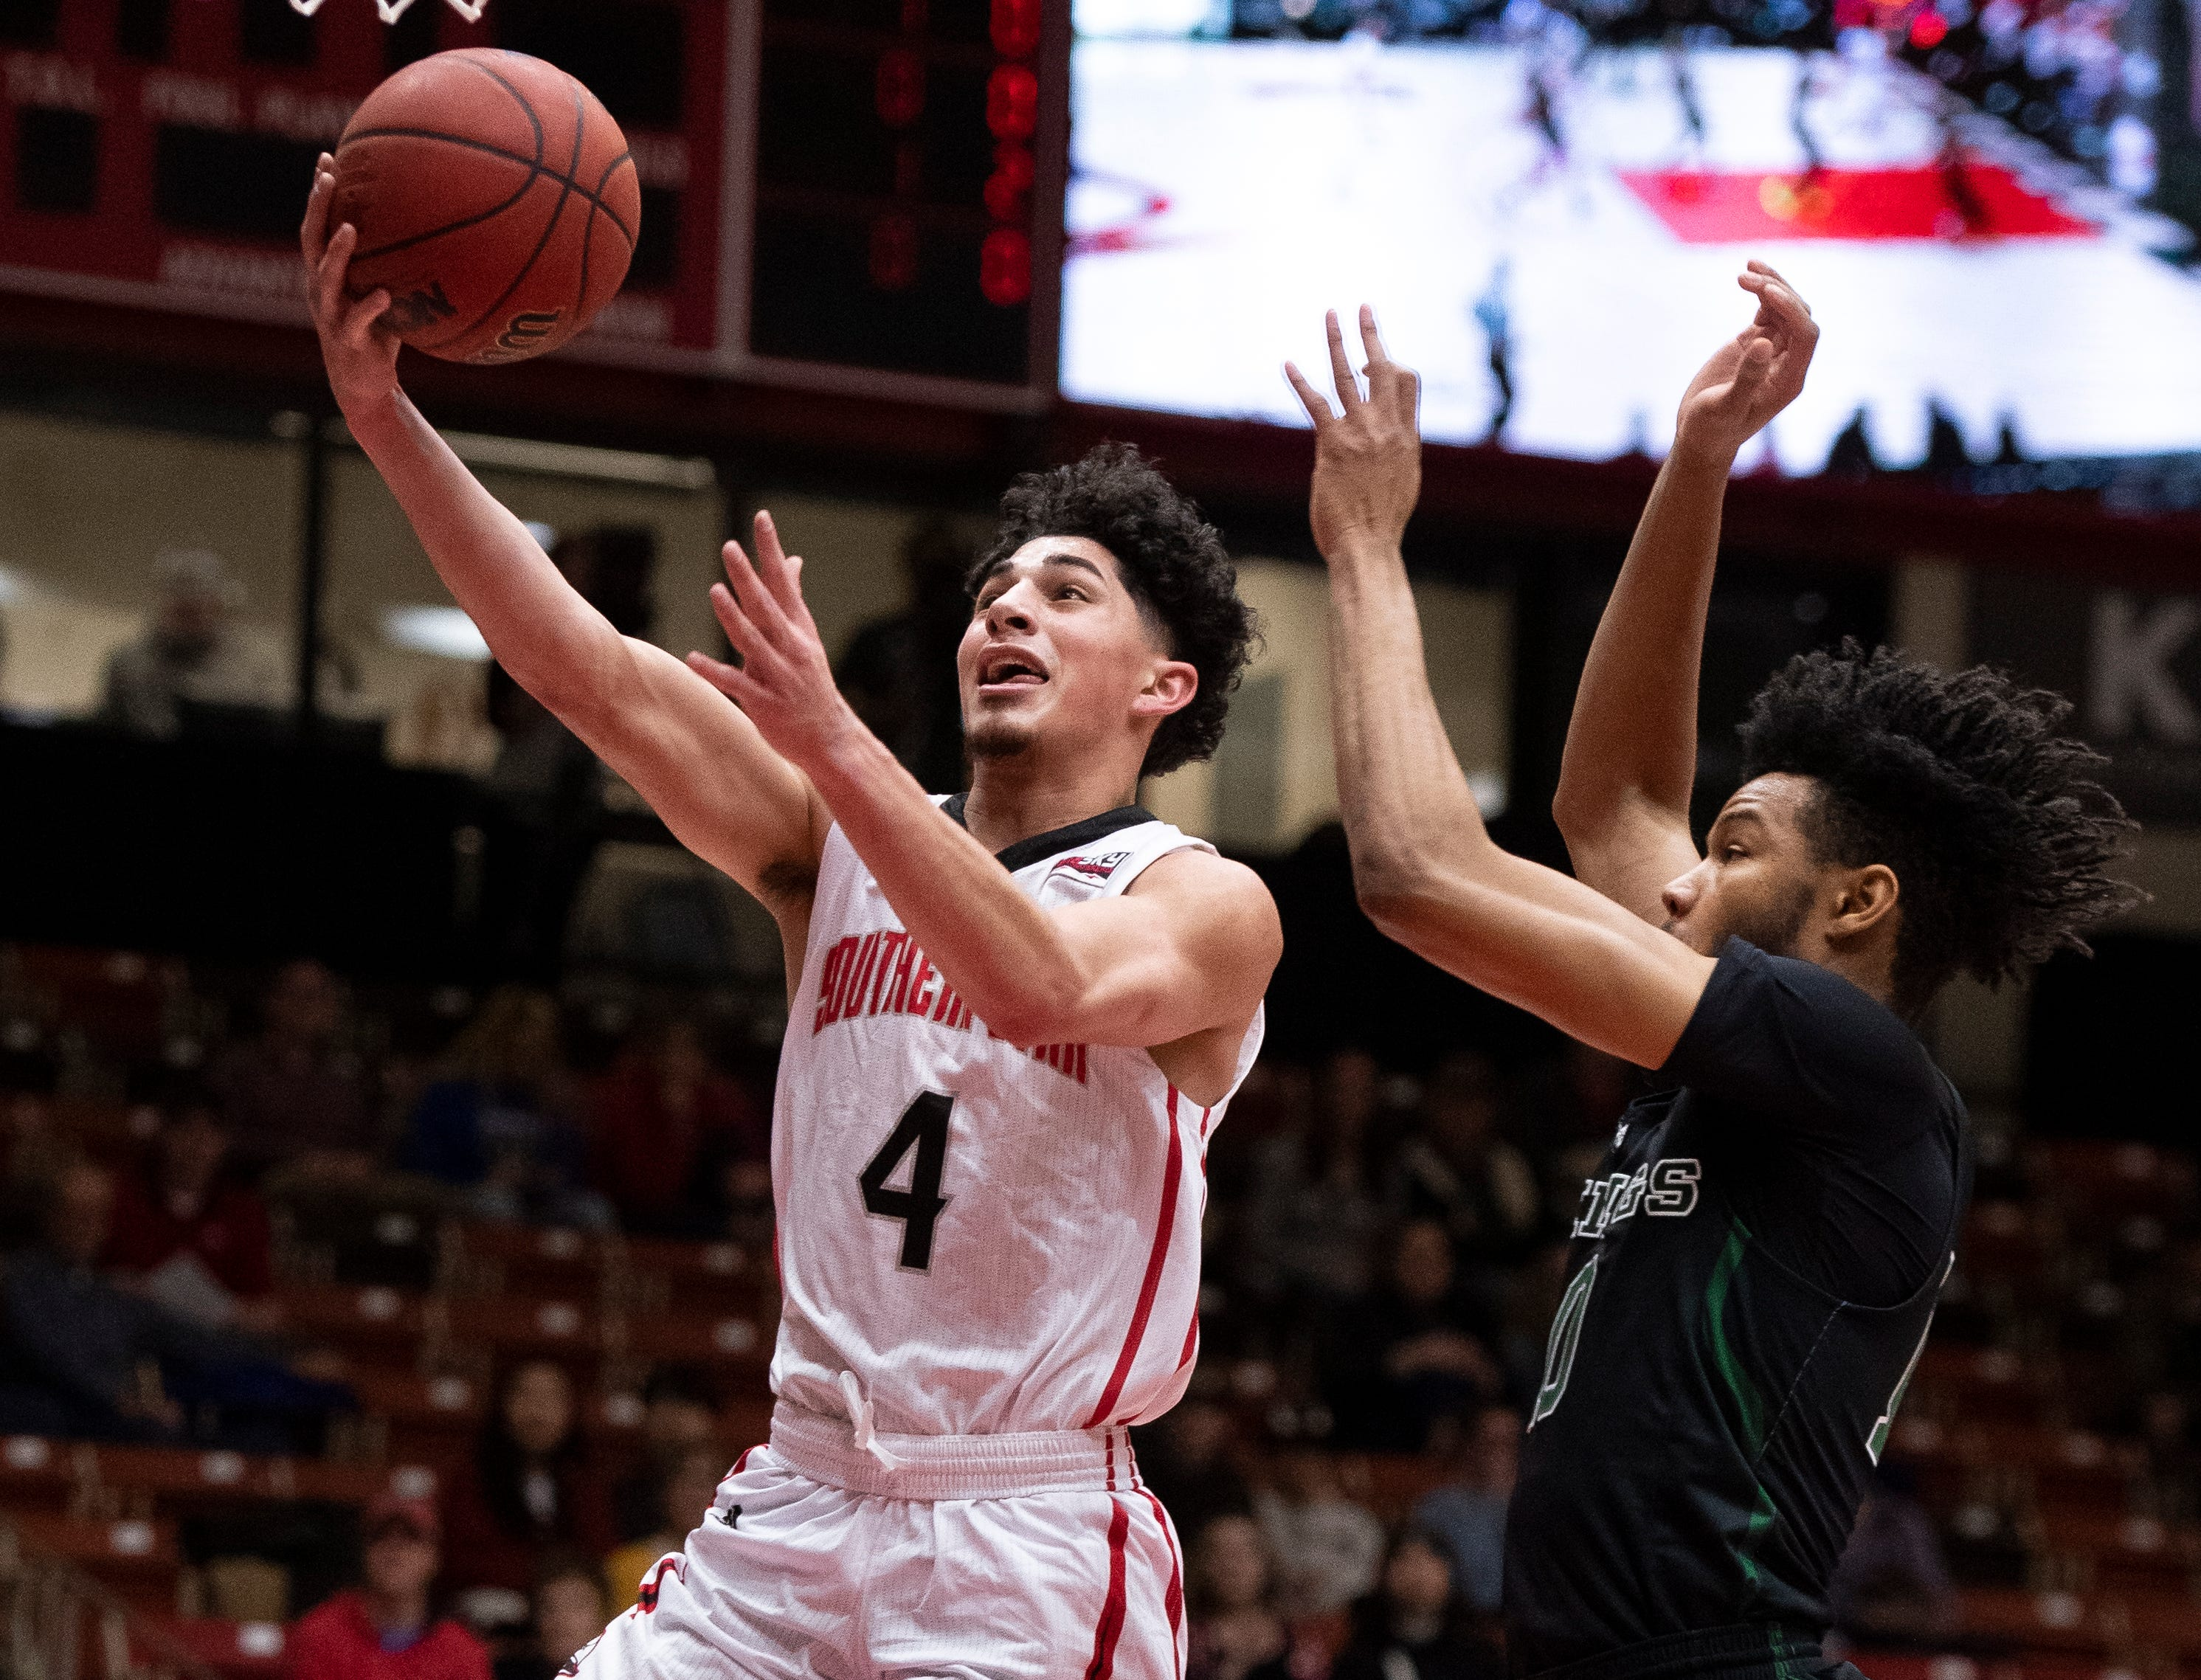 Southern Utah University sophomore Dre Marin (4) scores a basket against Portland State in the America First Event Center Thursday, January 17, 2019. SUU won, 83-69.